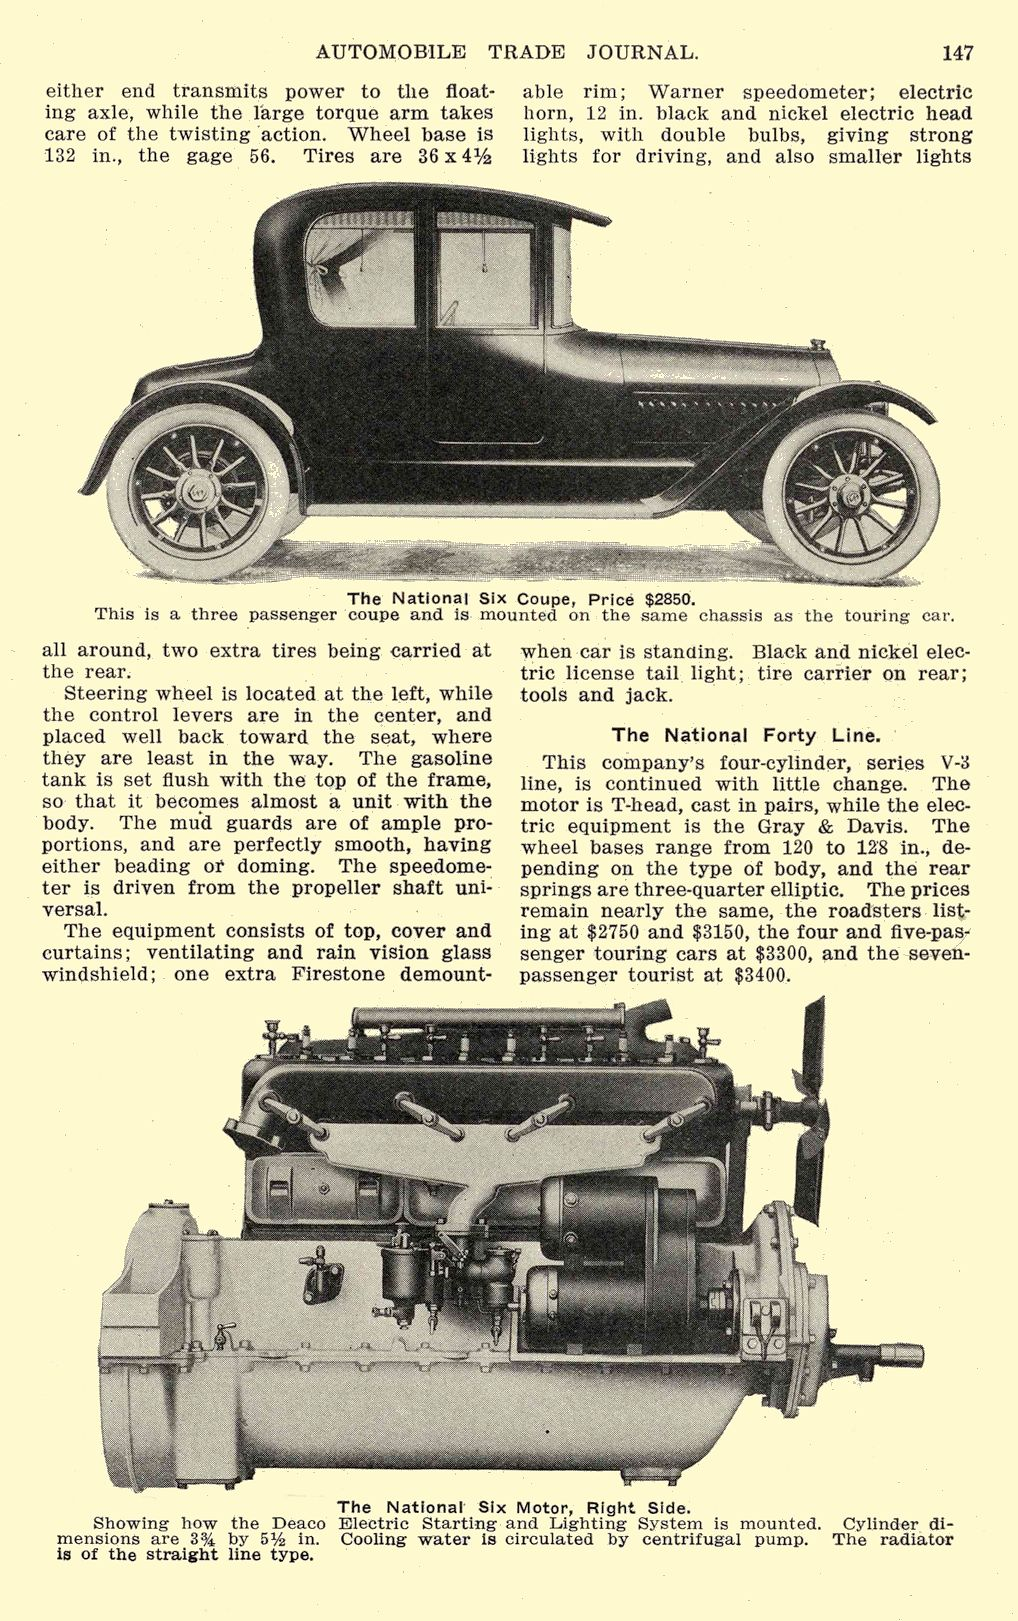 1914 NATIONAL Article National Six – At a Popular Price National Motor Vehicle Company Indianapolis, IND AUTOMOBILE TRADE JOURNAL 1914 6.5″x9.75″ page 147